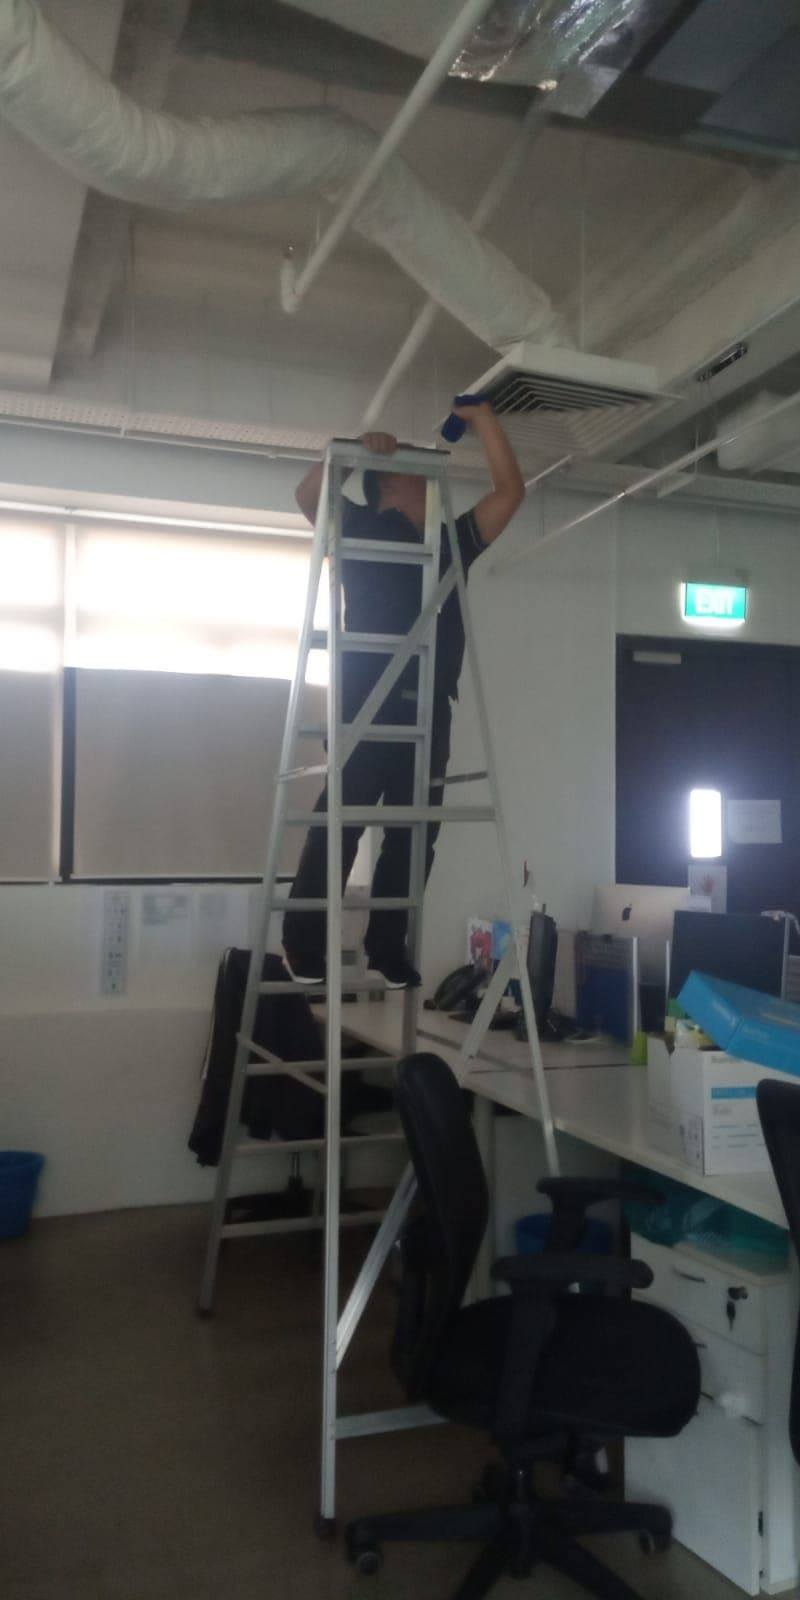 Disinfecting wipedown and cleaning of air vents and aircon ducts during covid-19